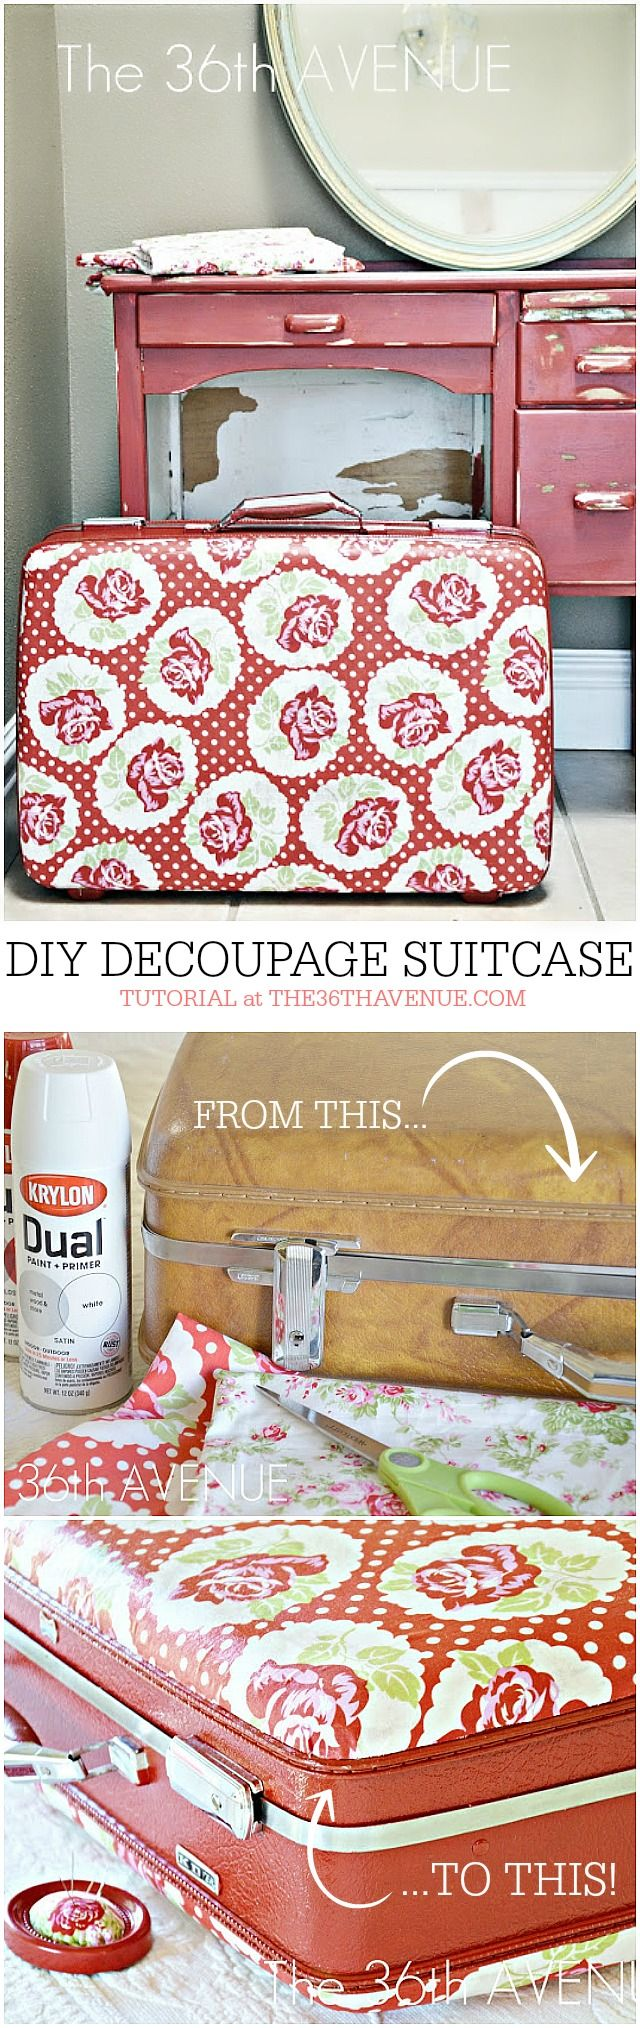 18 DIY Decoupaged Projects - A Little Craft In Your Day